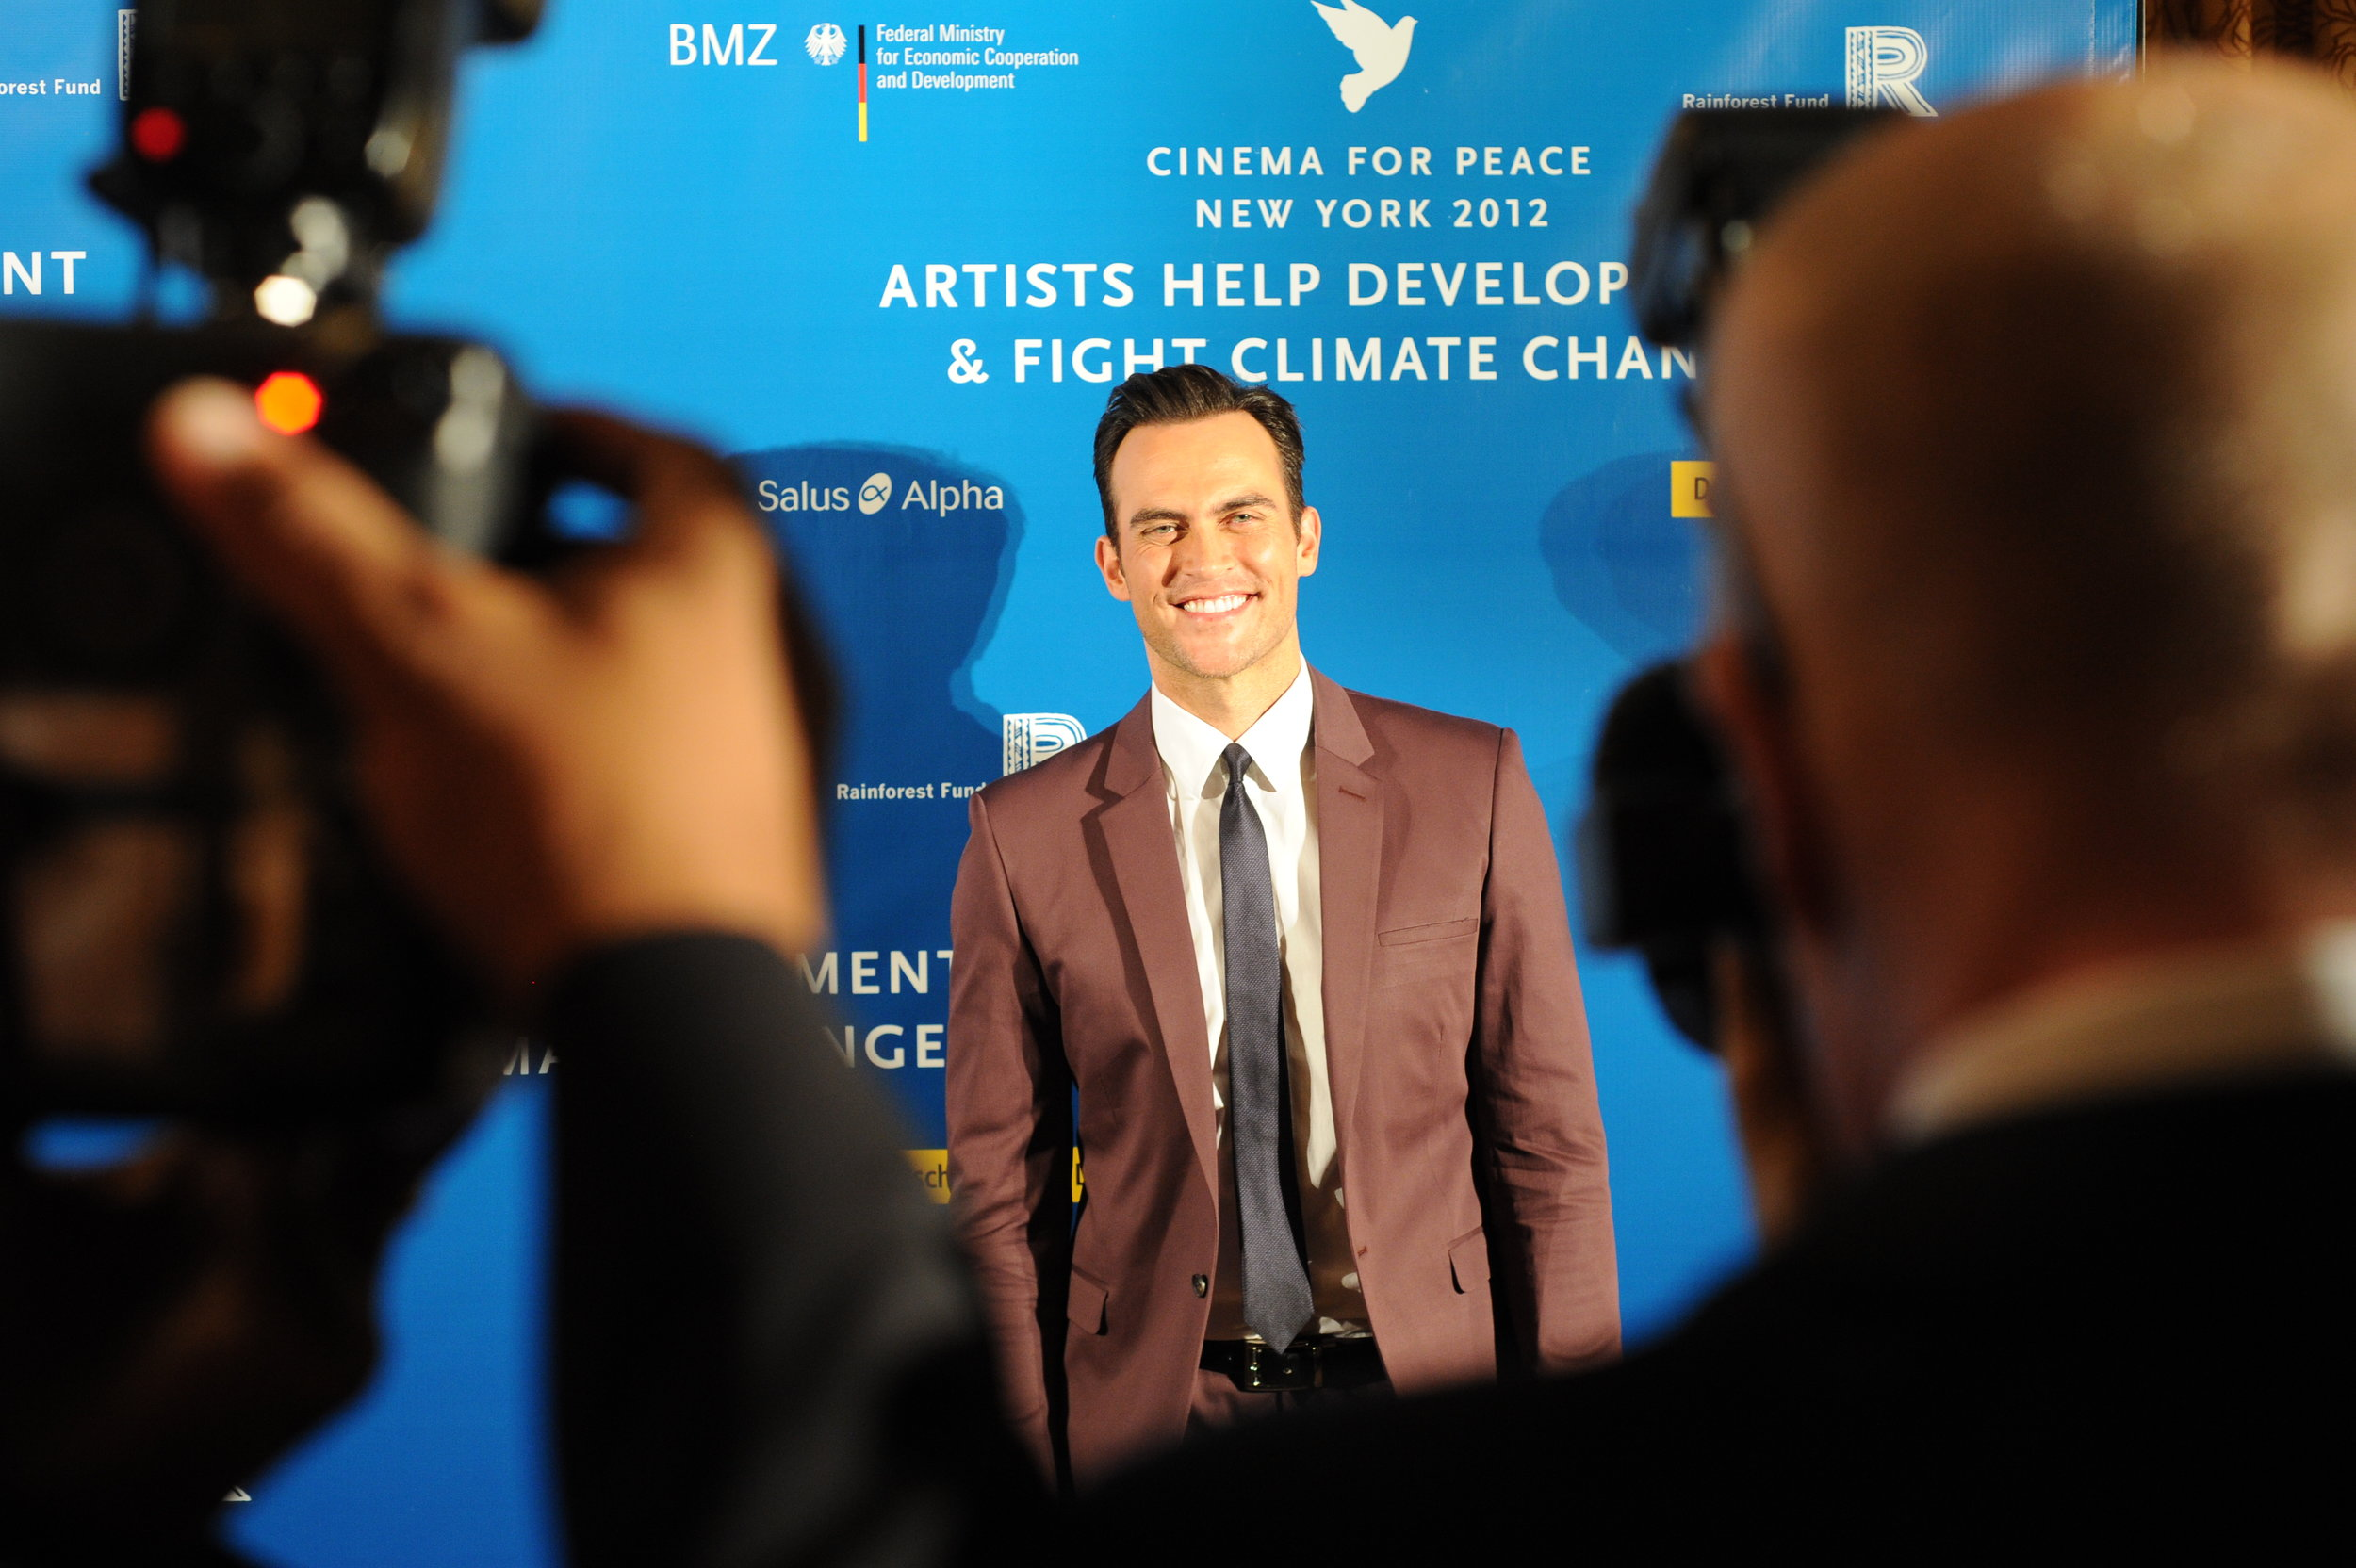 Cheyenne Jackson hits the Red Carpet at JGPR's Cinema for Peace Gala at The Harvard Club honoring Sting, Trudie Styler, The Rainforest Fund & The Leonardo DiCaprio Foundation..JPG